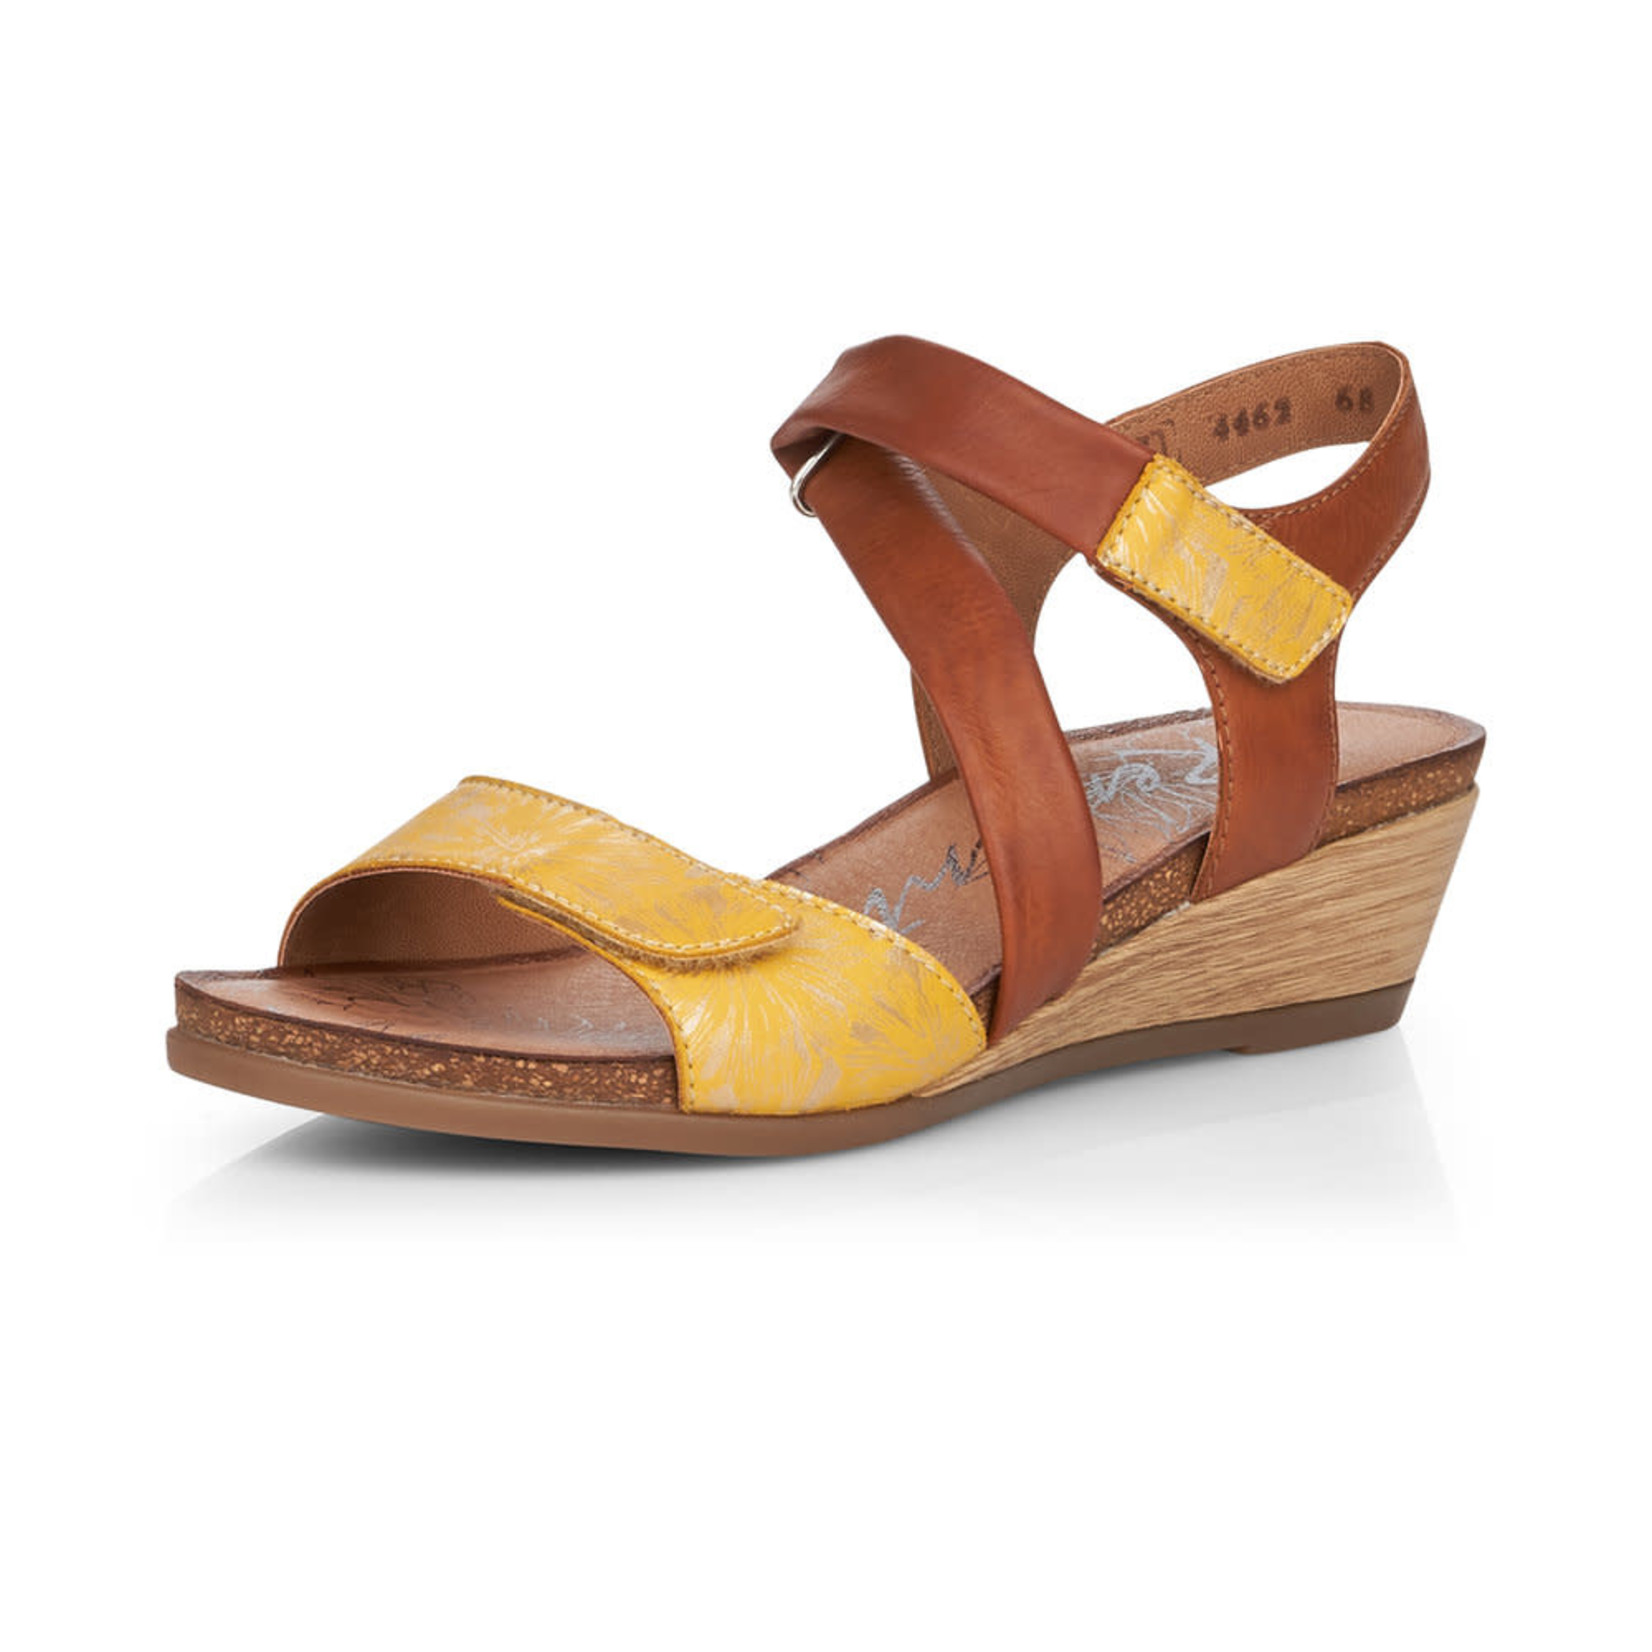 Remonte Remonte R4462-68 only size 36